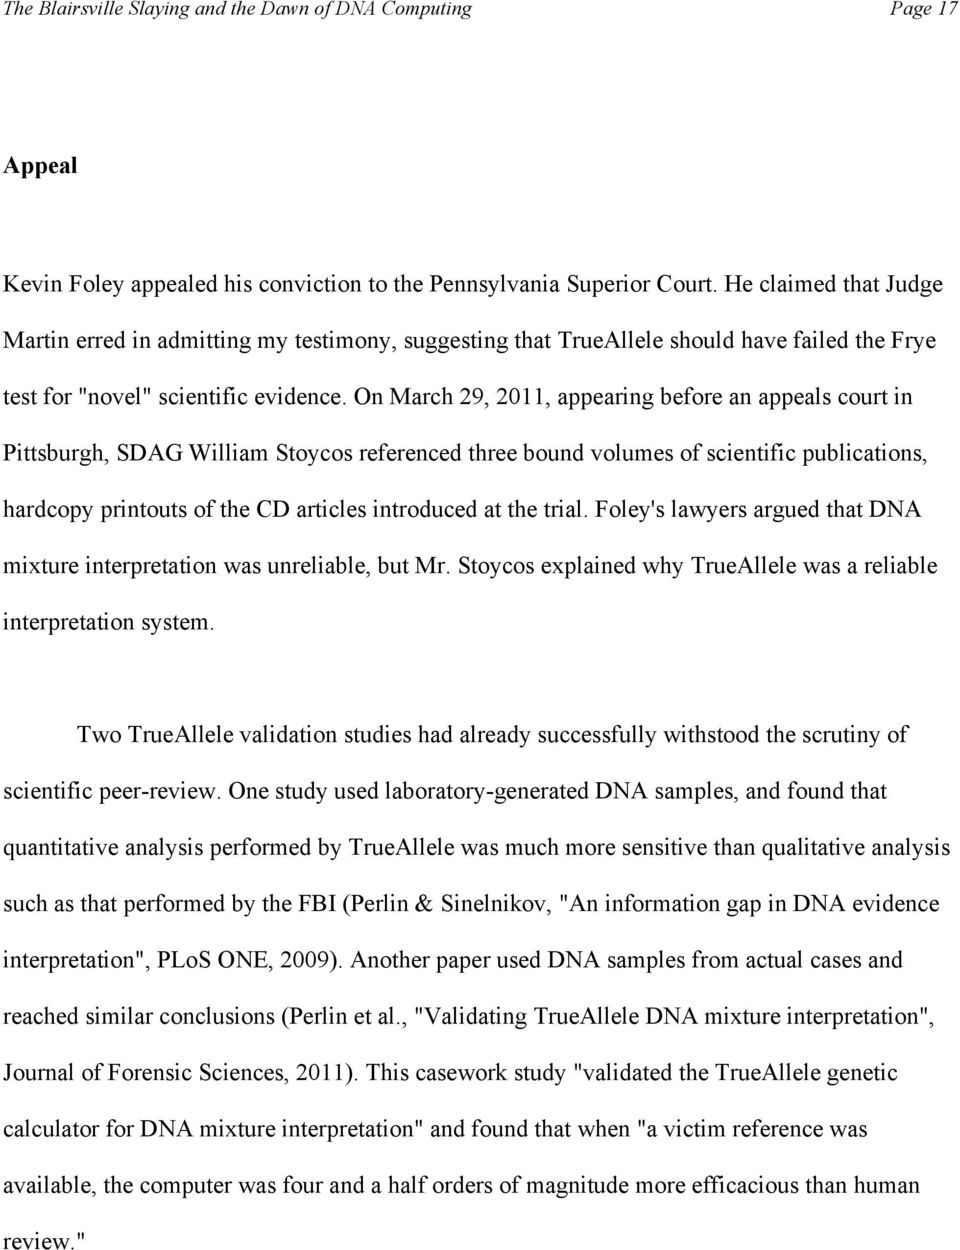 On March 29, 2011, appearing before an appeals court in Pittsburgh, SDAG William Stoycos referenced three bound volumes of scientific publications, hardcopy printouts of the CD articles introduced at